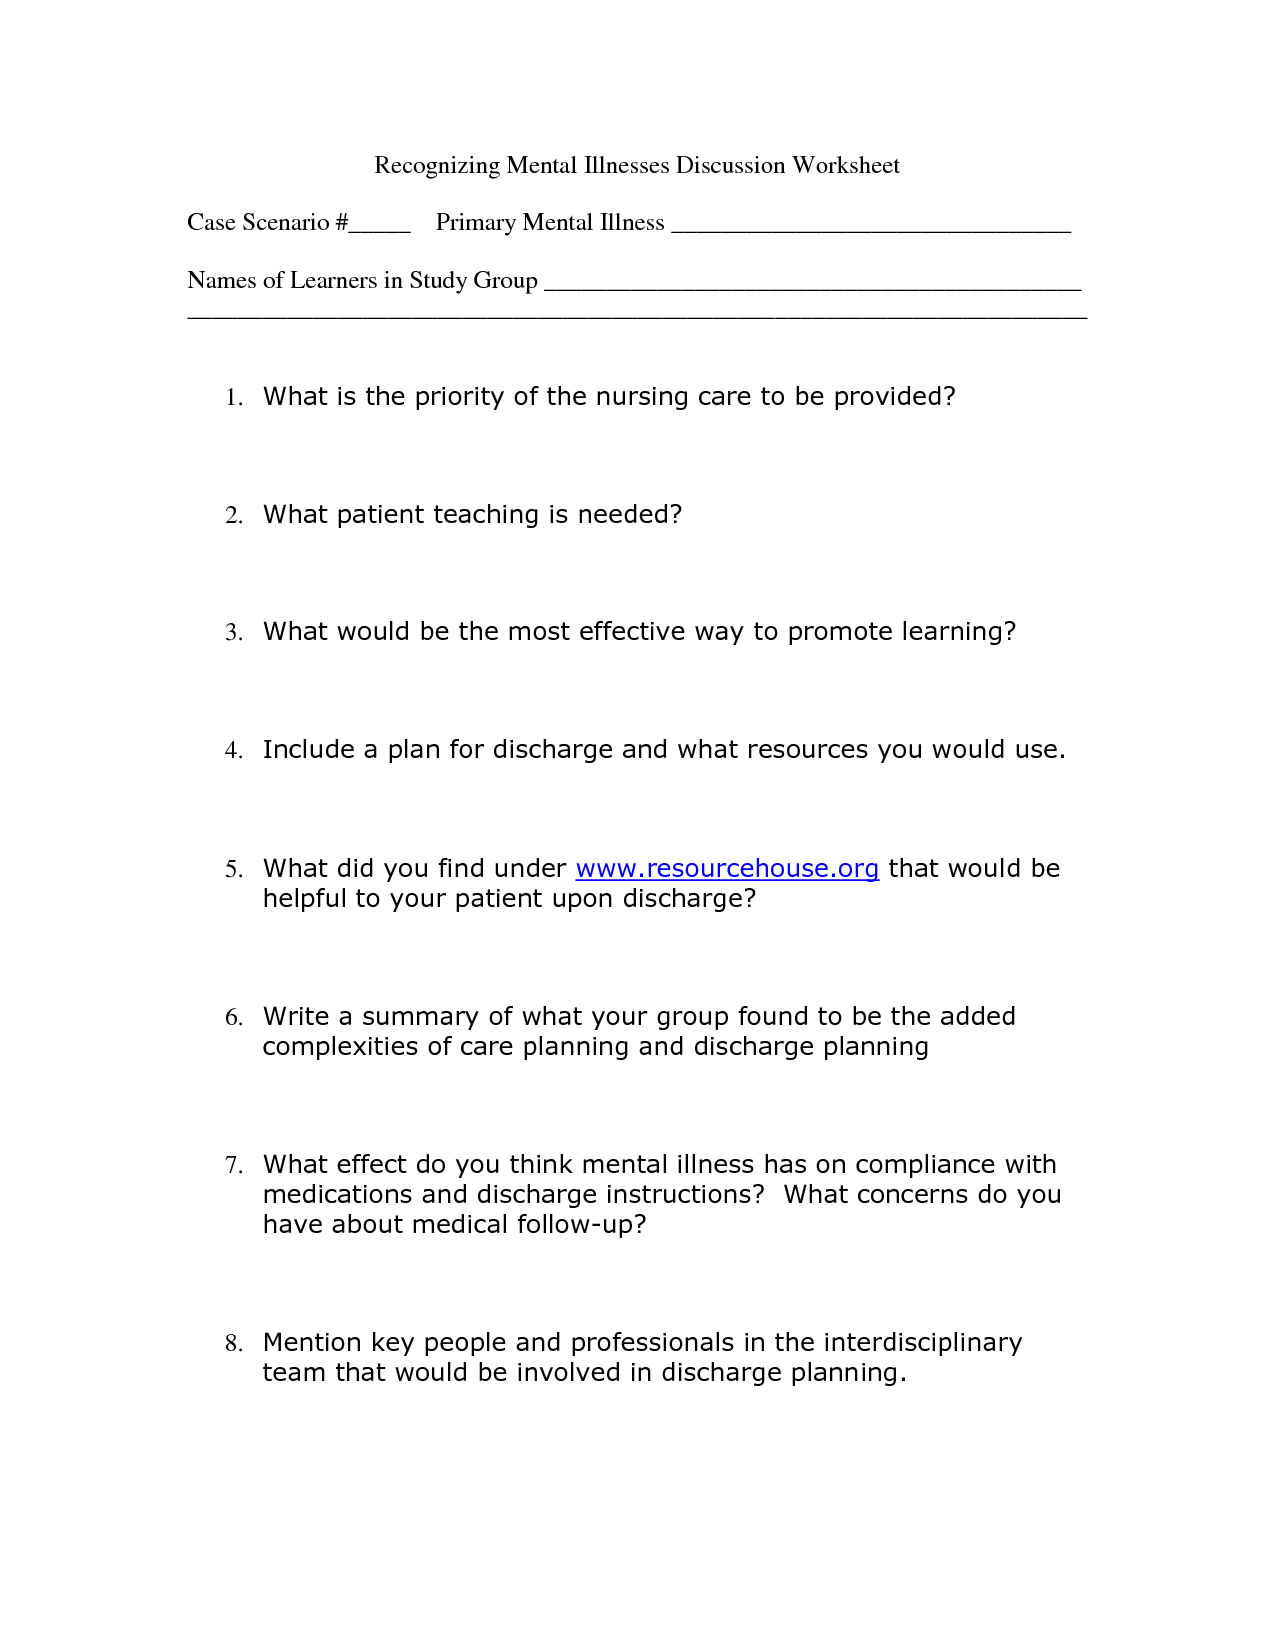 Worksheet : Free Mental Health Worksheets Davezan L For Kids | Printable Mental Health Worksheets For Adults